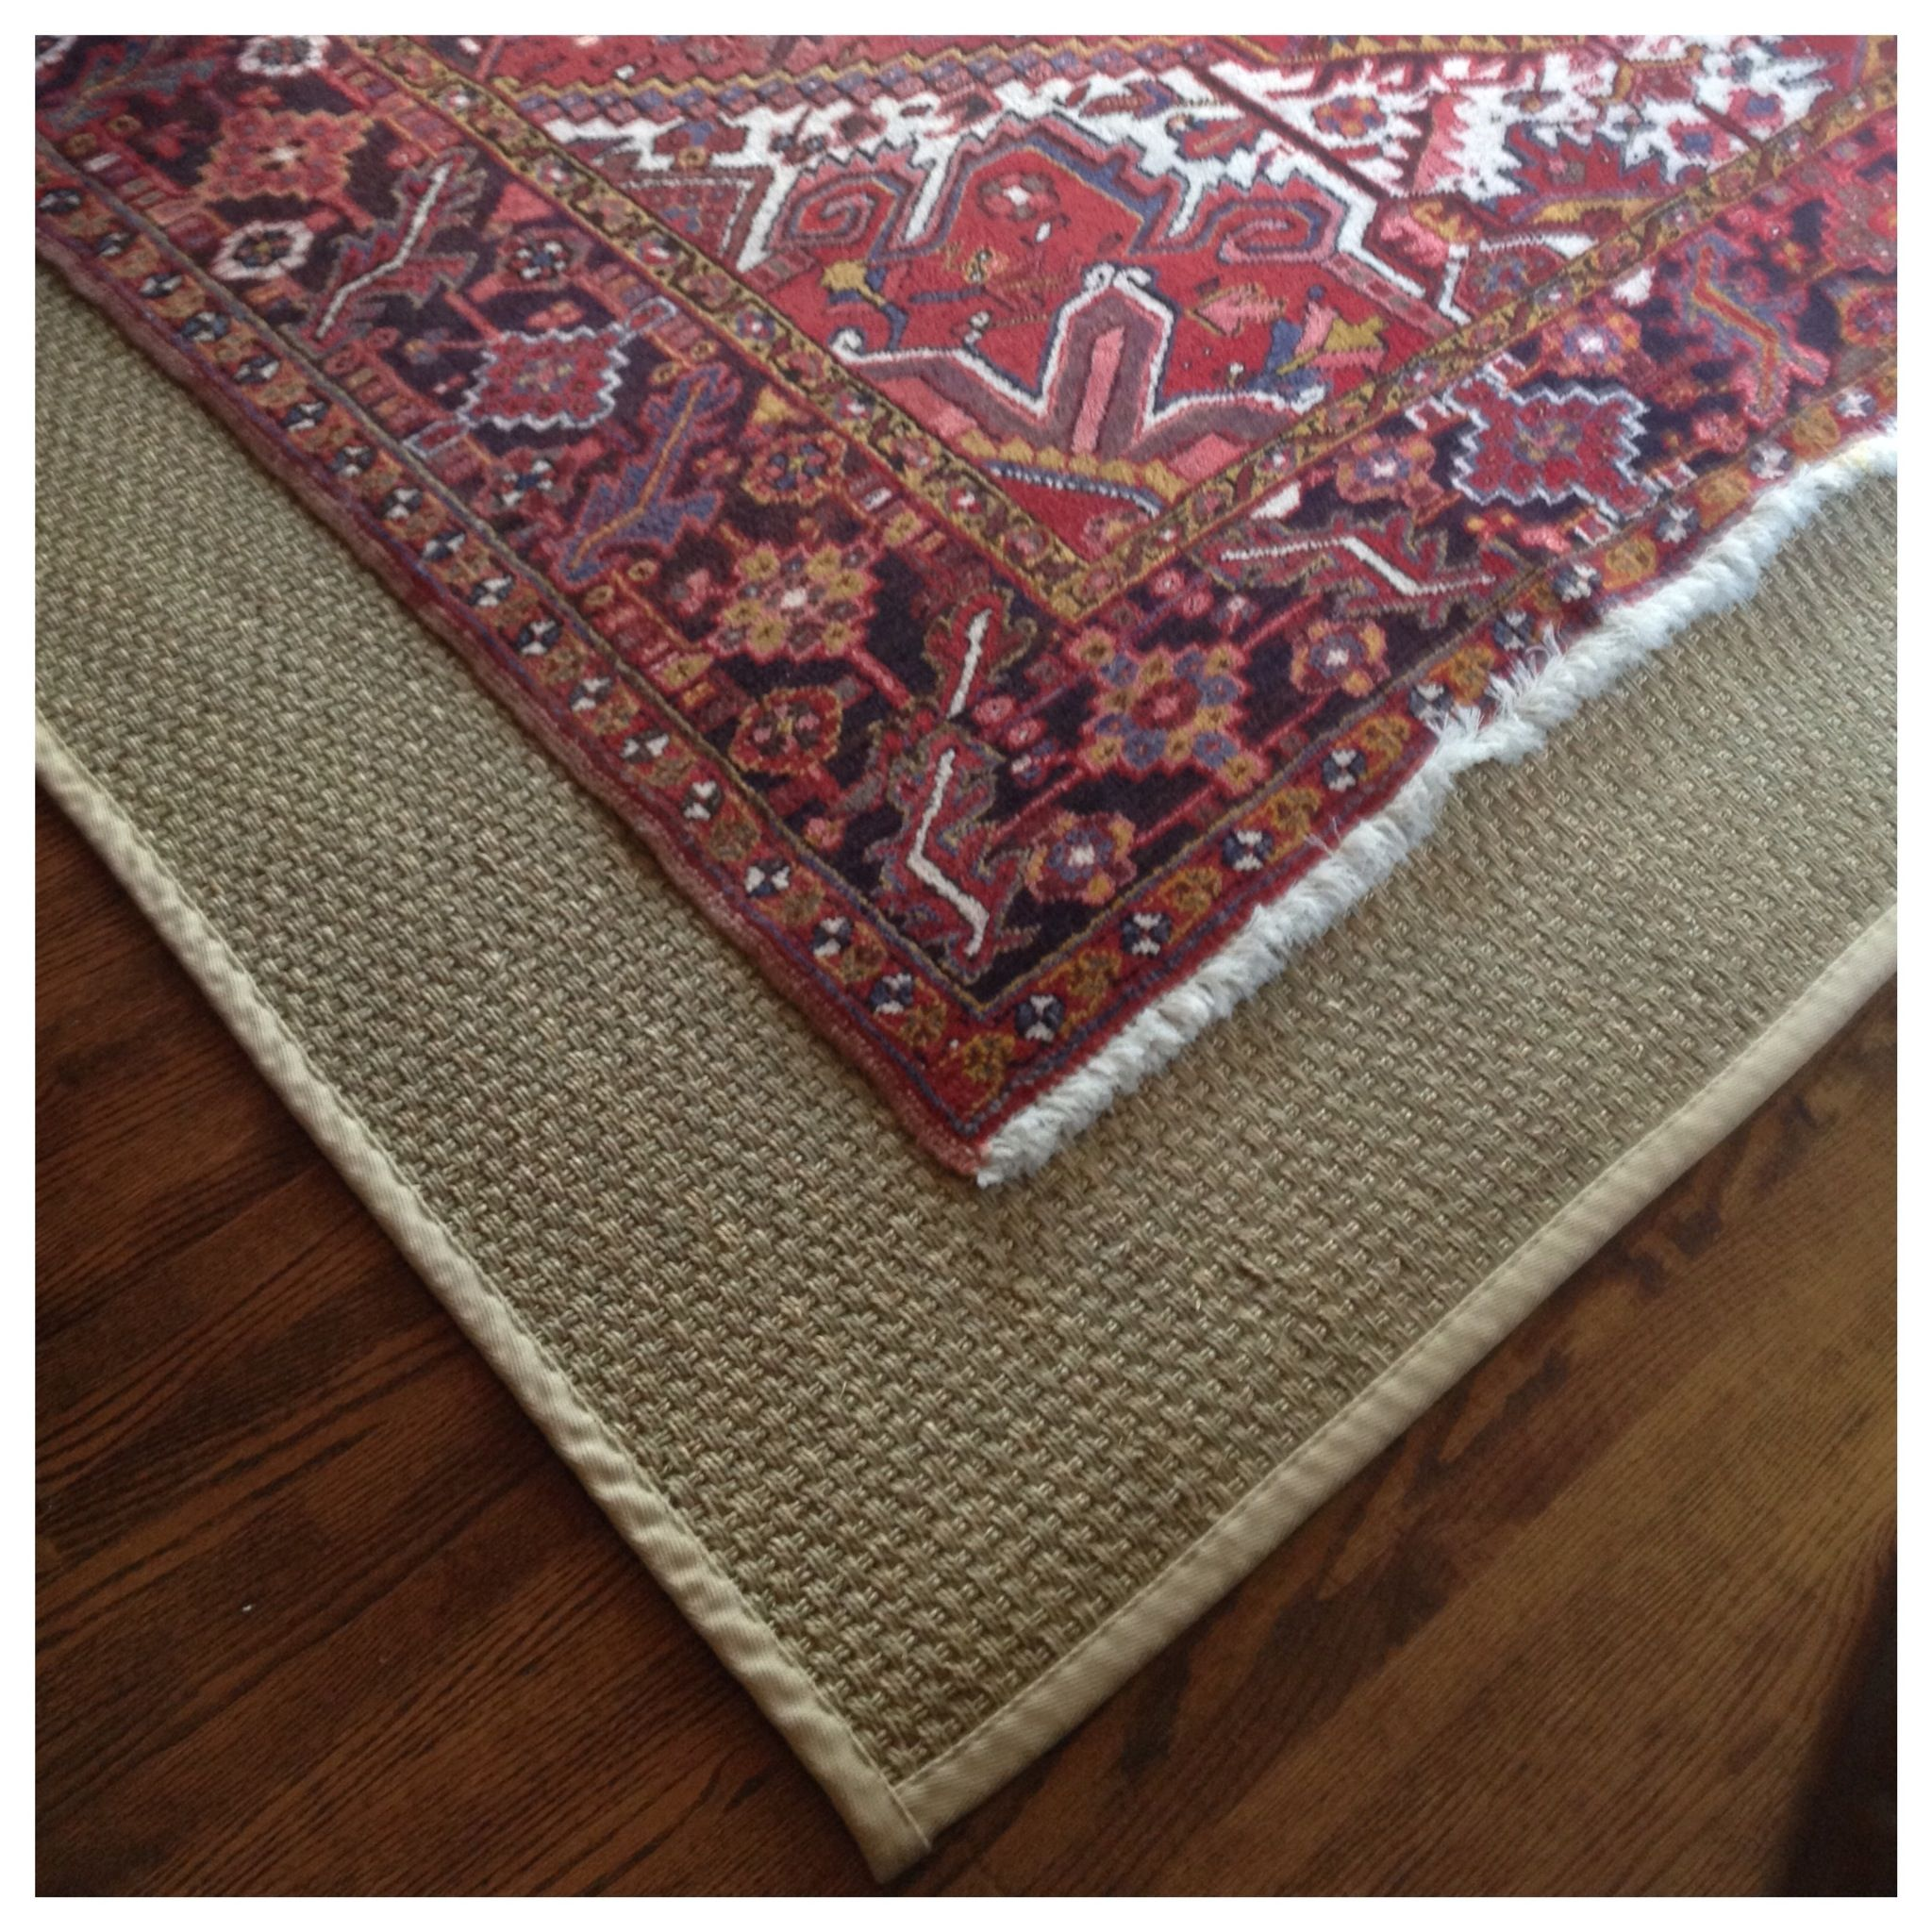 Layer An Antique Persian Rug Atop Of A Seagr